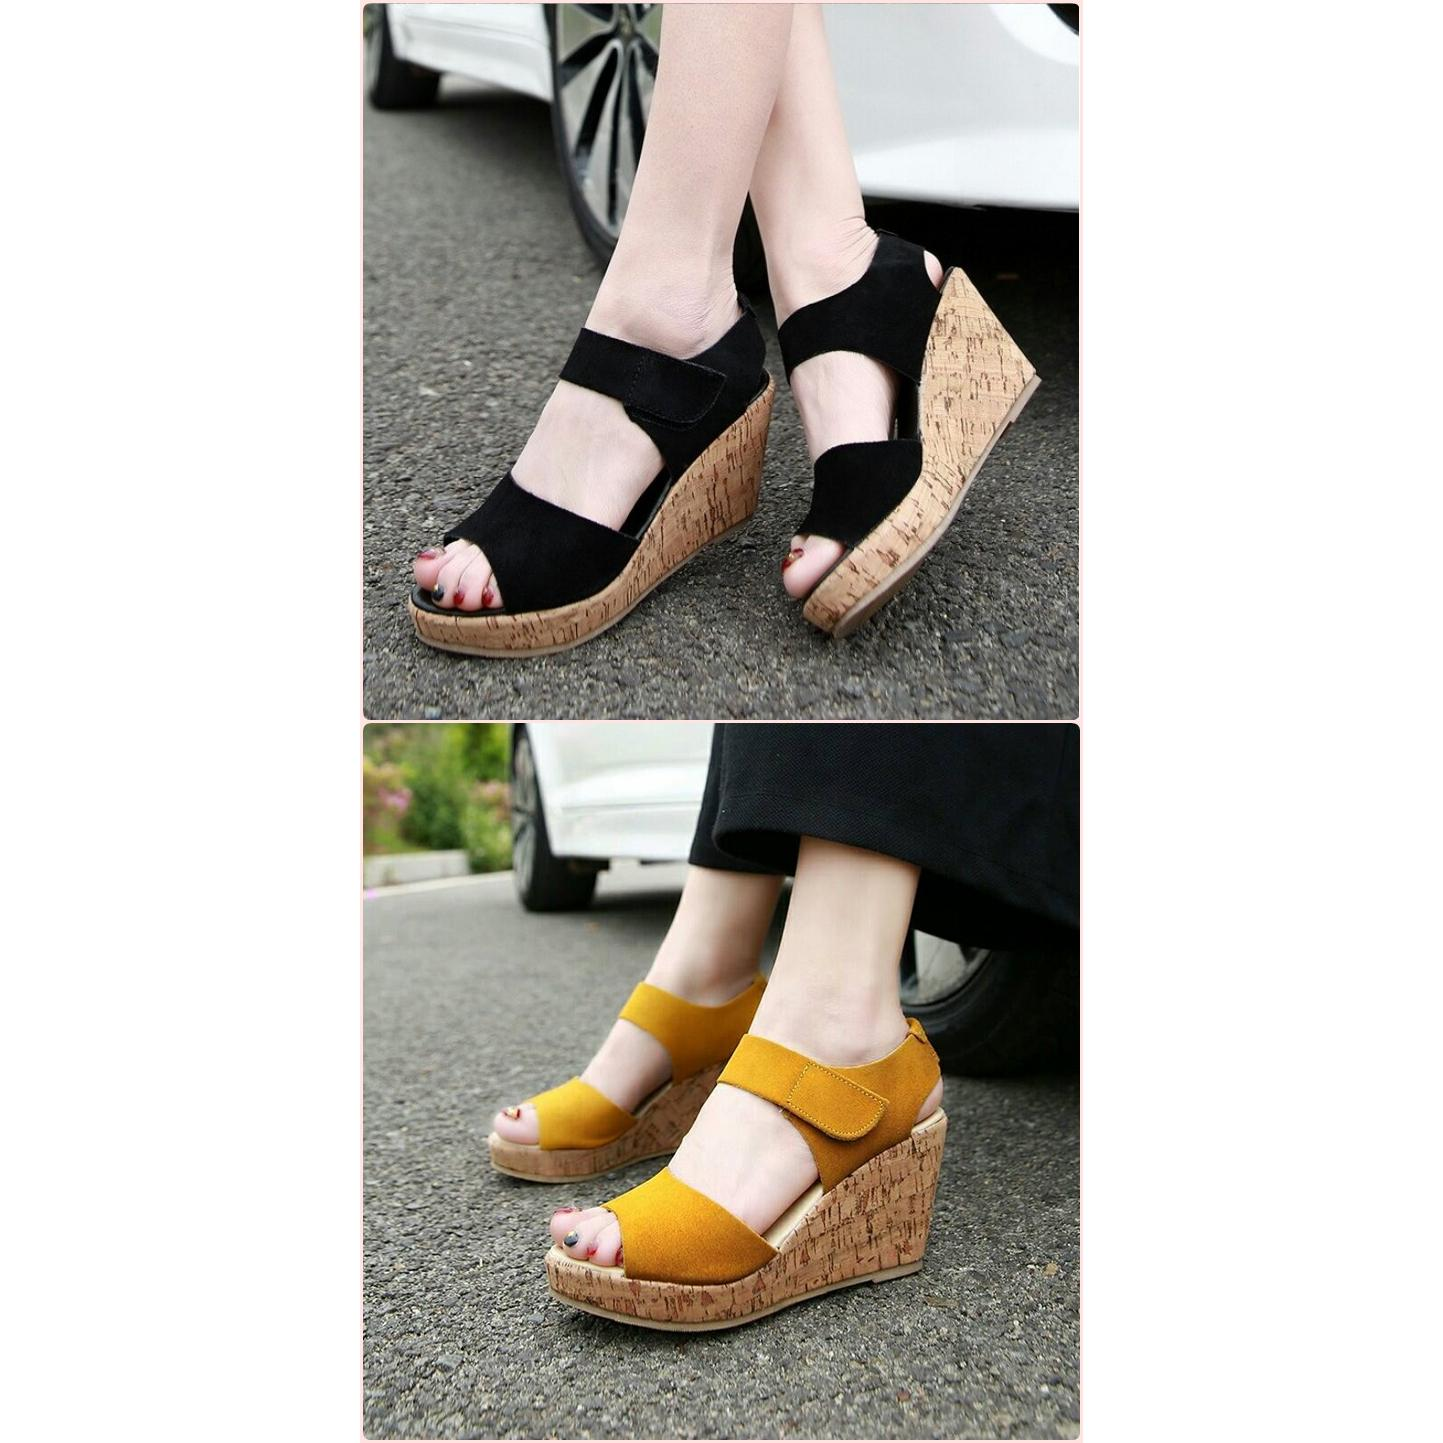 Sepatu Wanita Wedges Elegan Bahan Synth Elevenia Carvil Canvas Ladies Helena 01 Black Gold Hitam 39